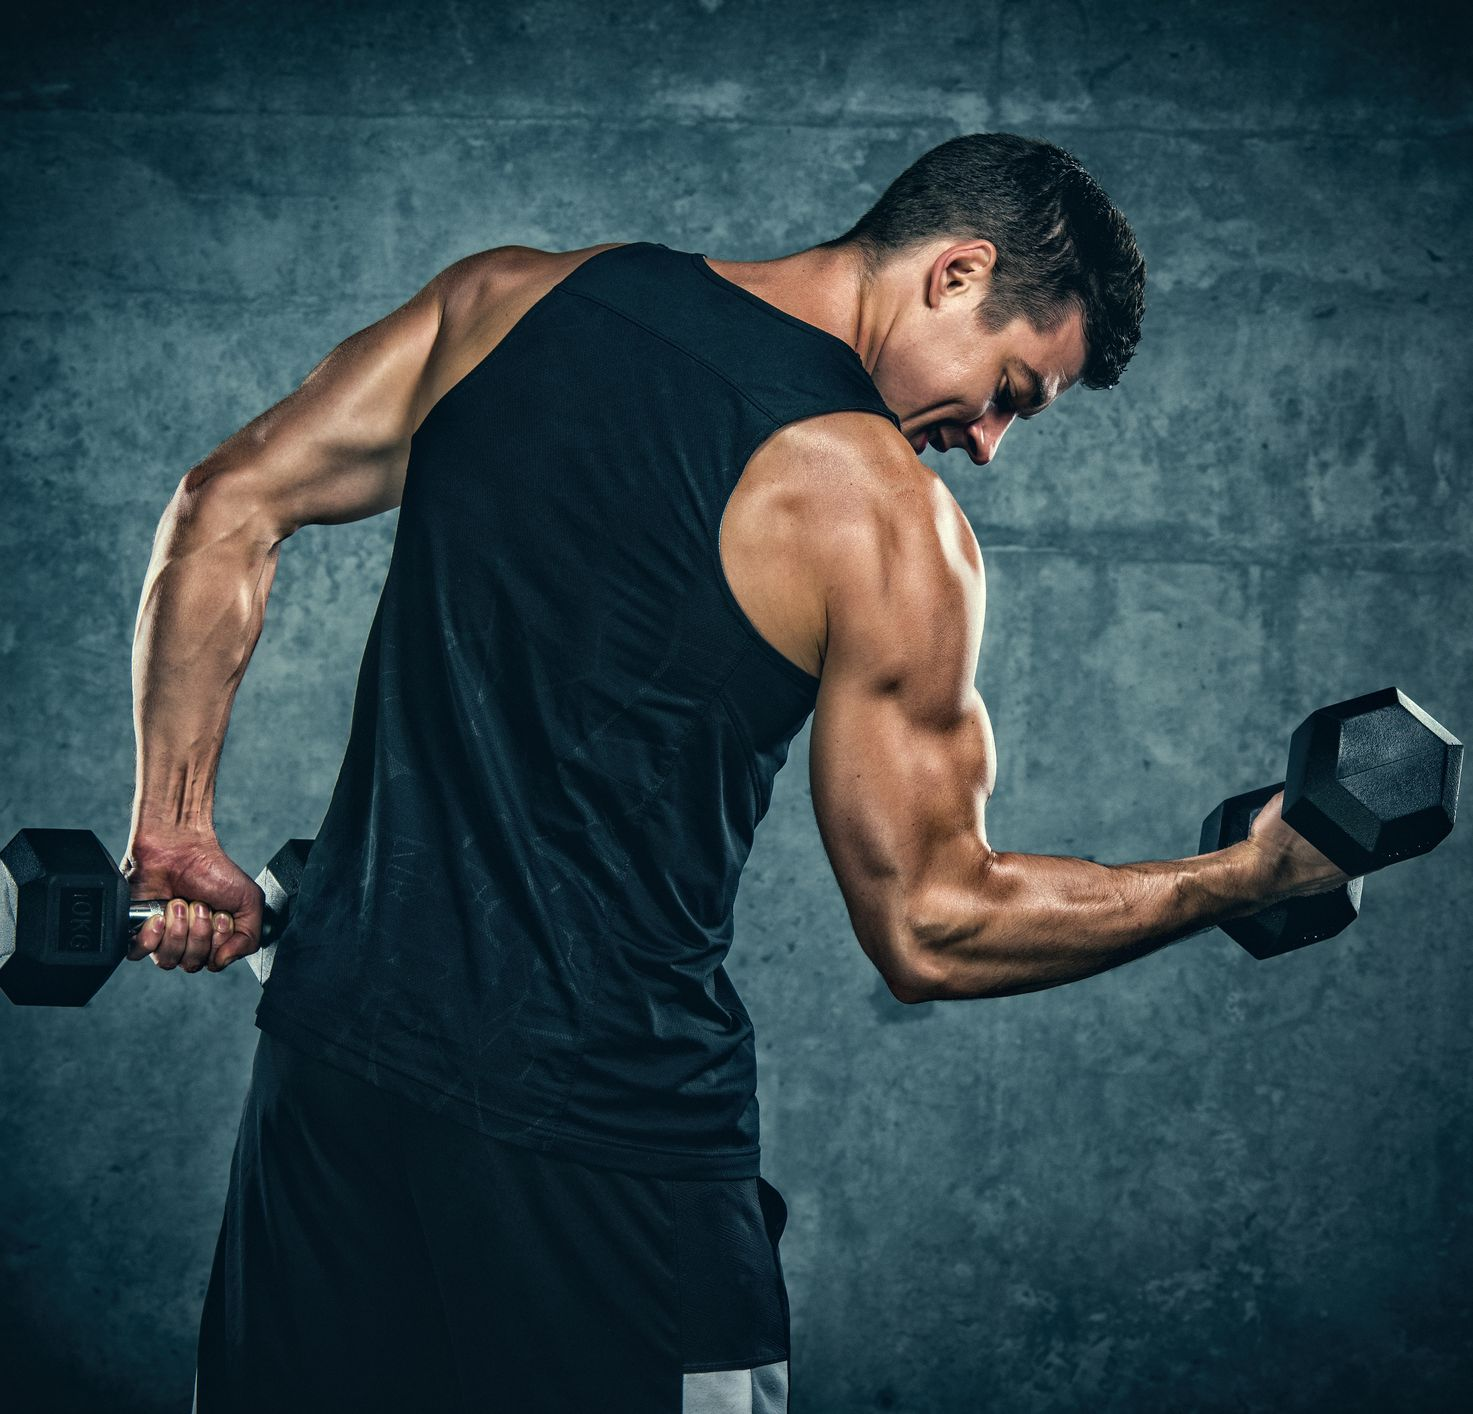 How You Can Train With Nothing But a Set of Dumbbells